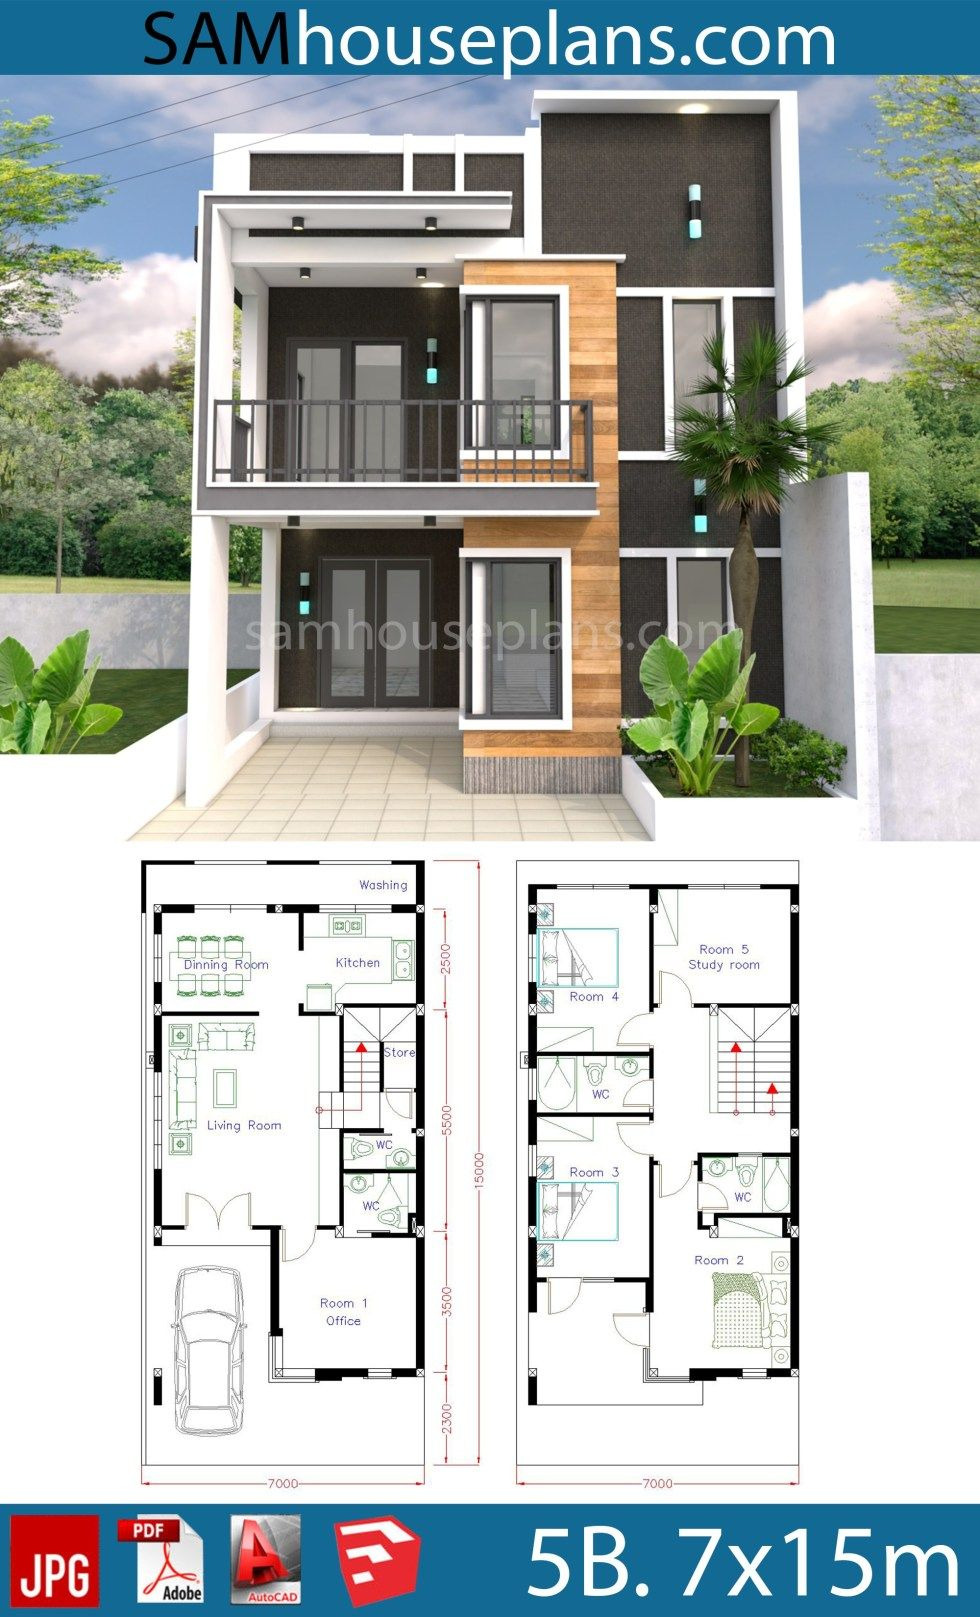 New Model House Design Beautiful House Plans 7x15m with 4 Bedrooms